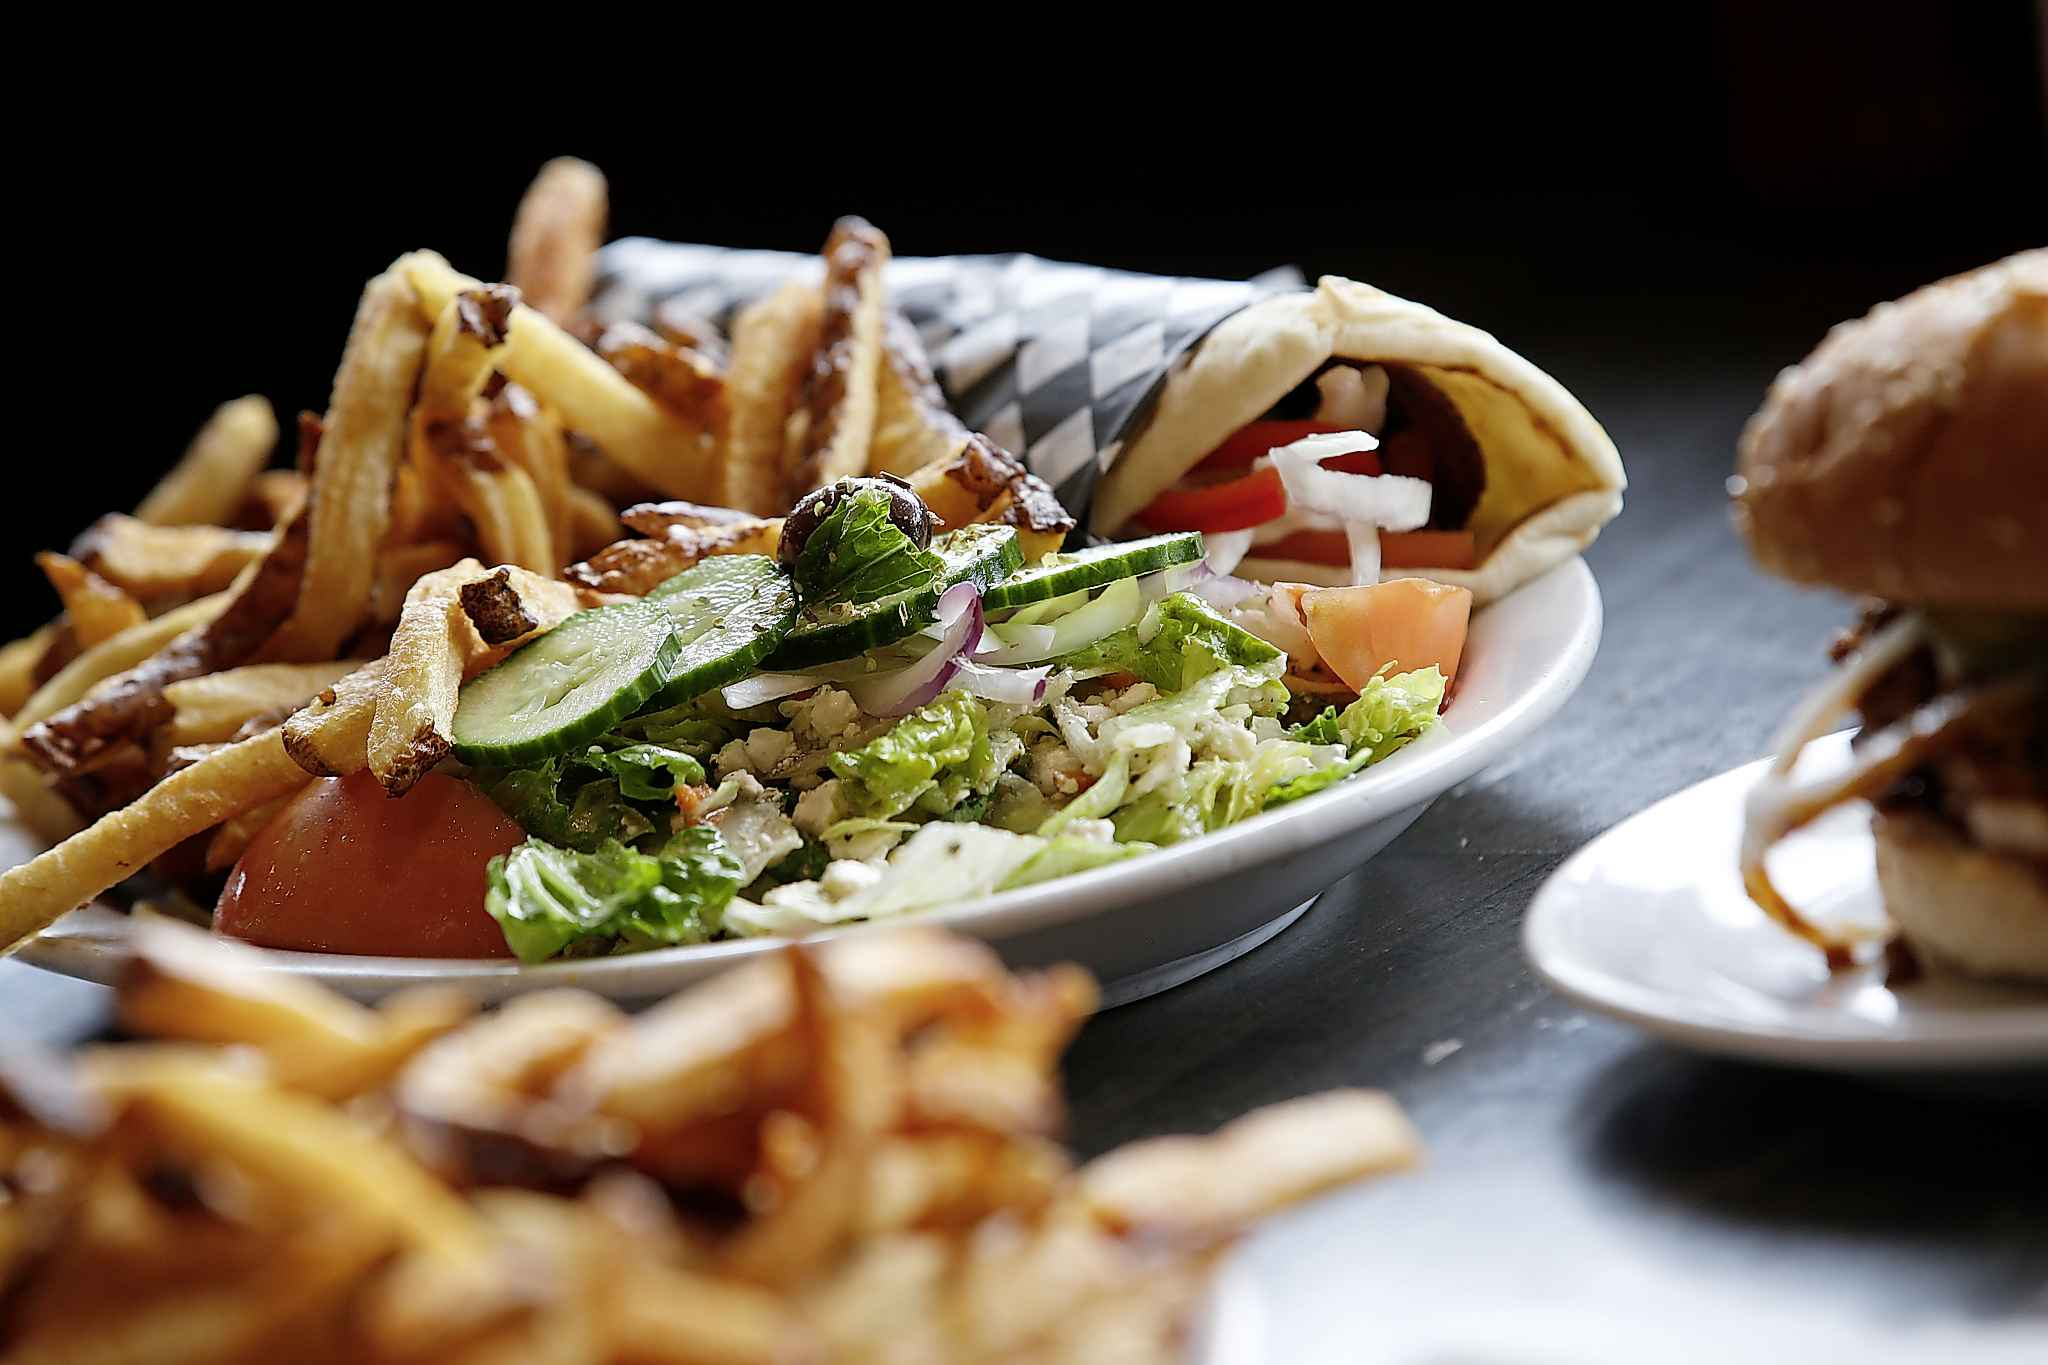 The menu mixes up standard drive-in items with a few Greek specialties. (John Woods / Winnipeg Free Press)